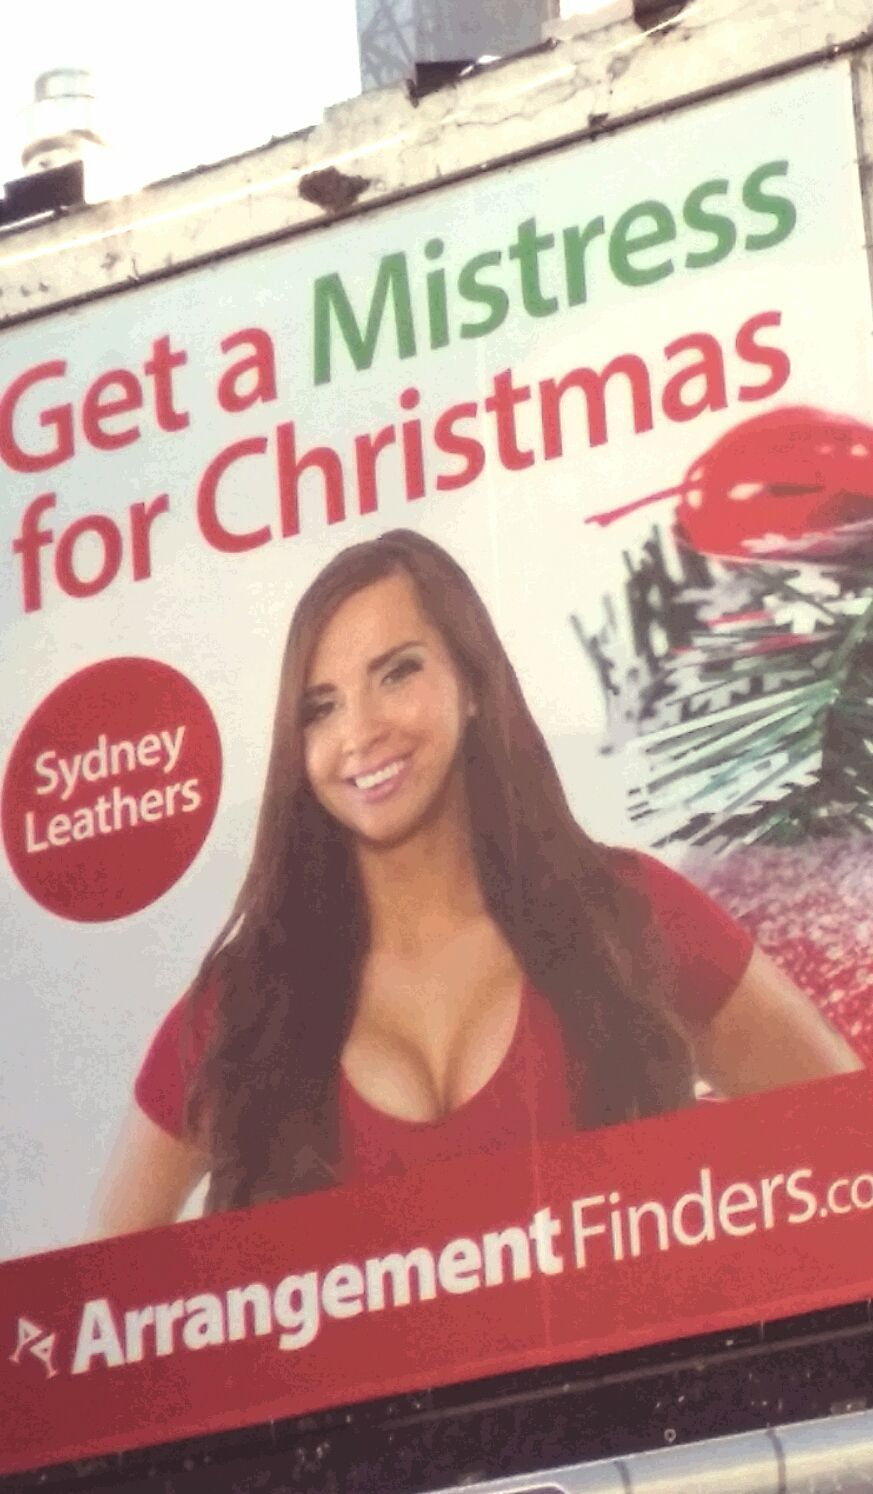 Sydney Leathers can help you through the Holland Tunnel/tunnel of matrimony.